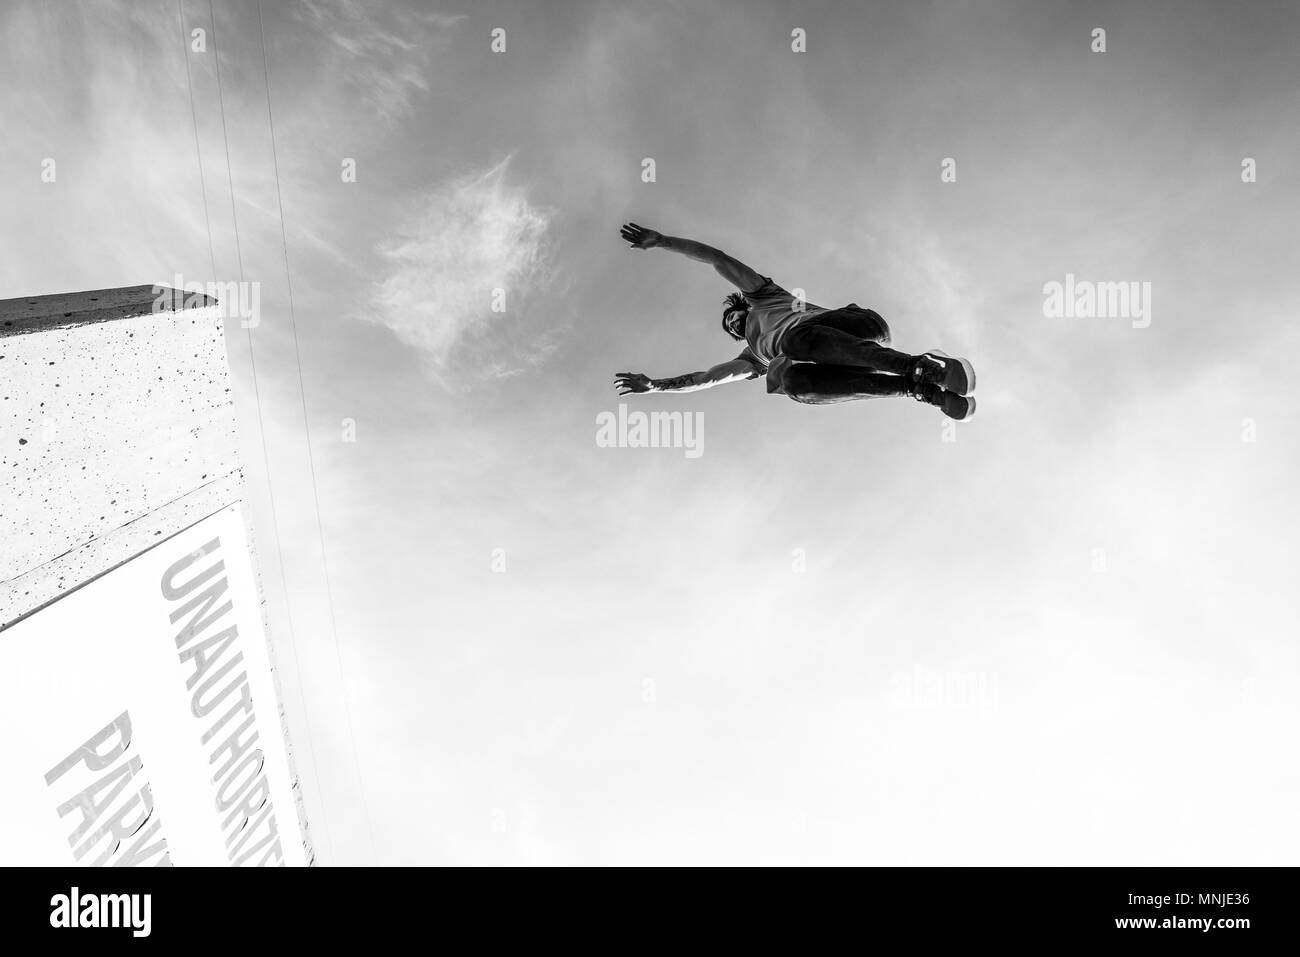 Park athlete jumping high gap in parking lot in downtown Denver, Colorado, USA - Stock Image